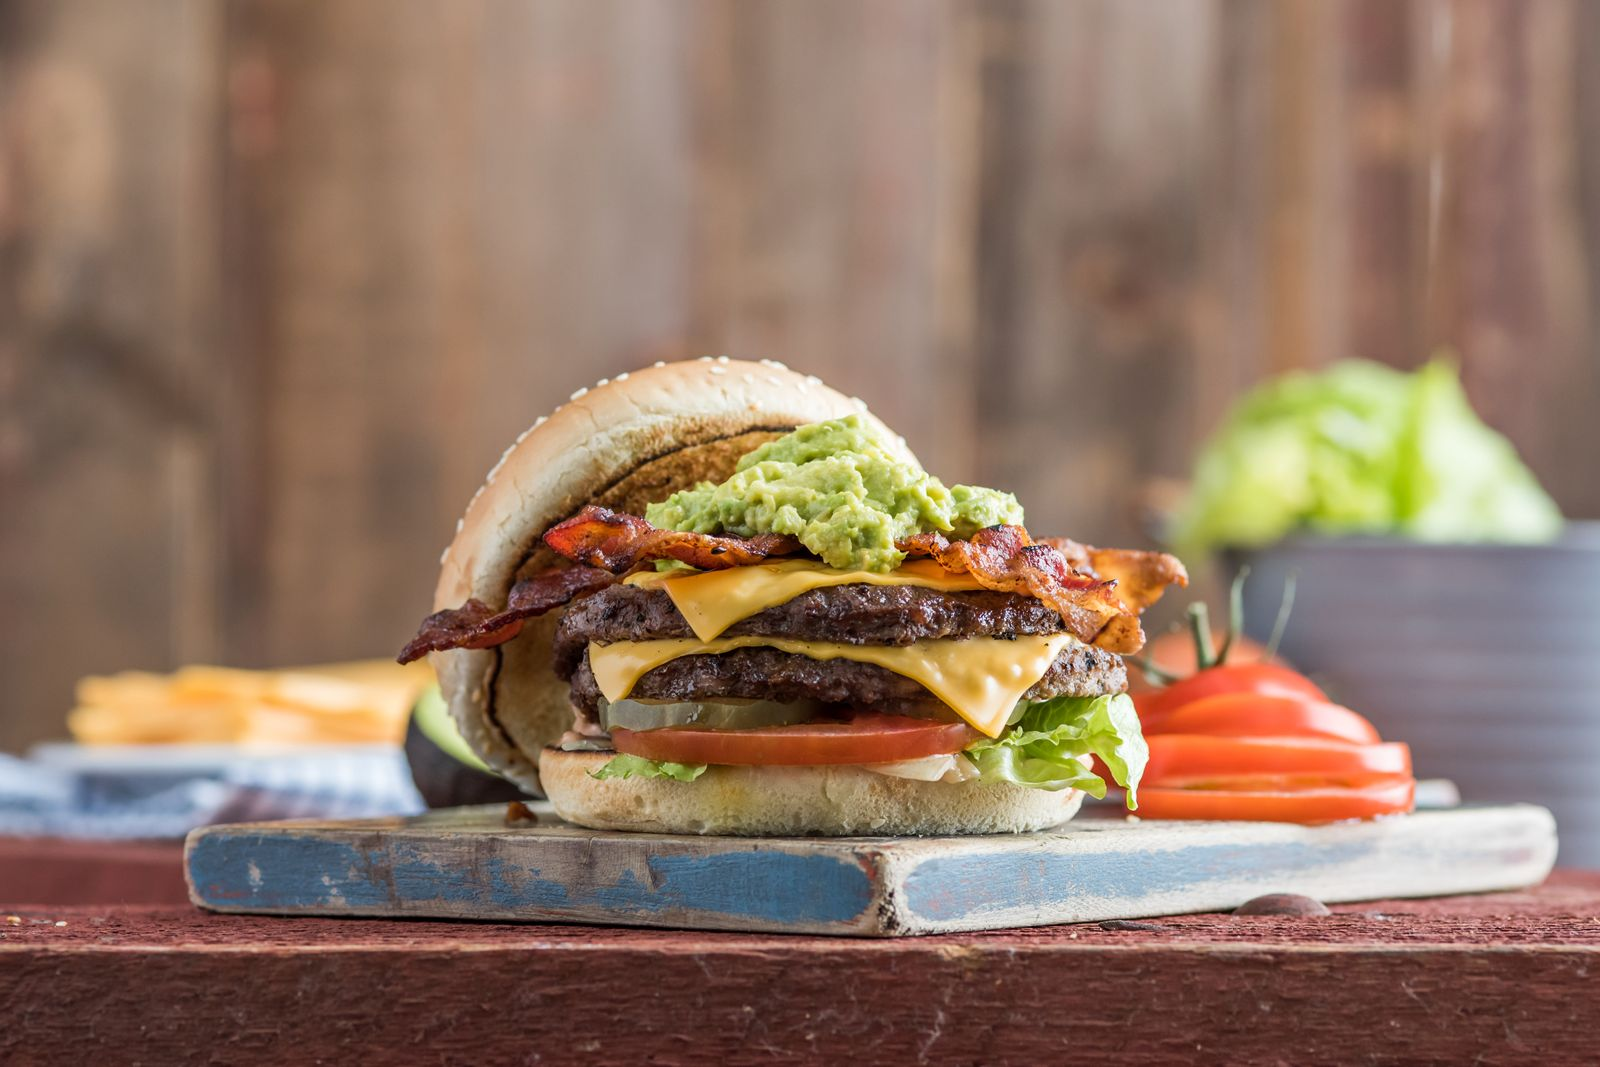 Farmer Boys, the farm-fresh fast casual burger concept with 8 locations throughout the greater Las Vegas area, has launched its inaugural fundraiser to support Children's Hospital of Nevada at UMC on August 28, which is taking place at all Nevada stores through October 8, 2018.